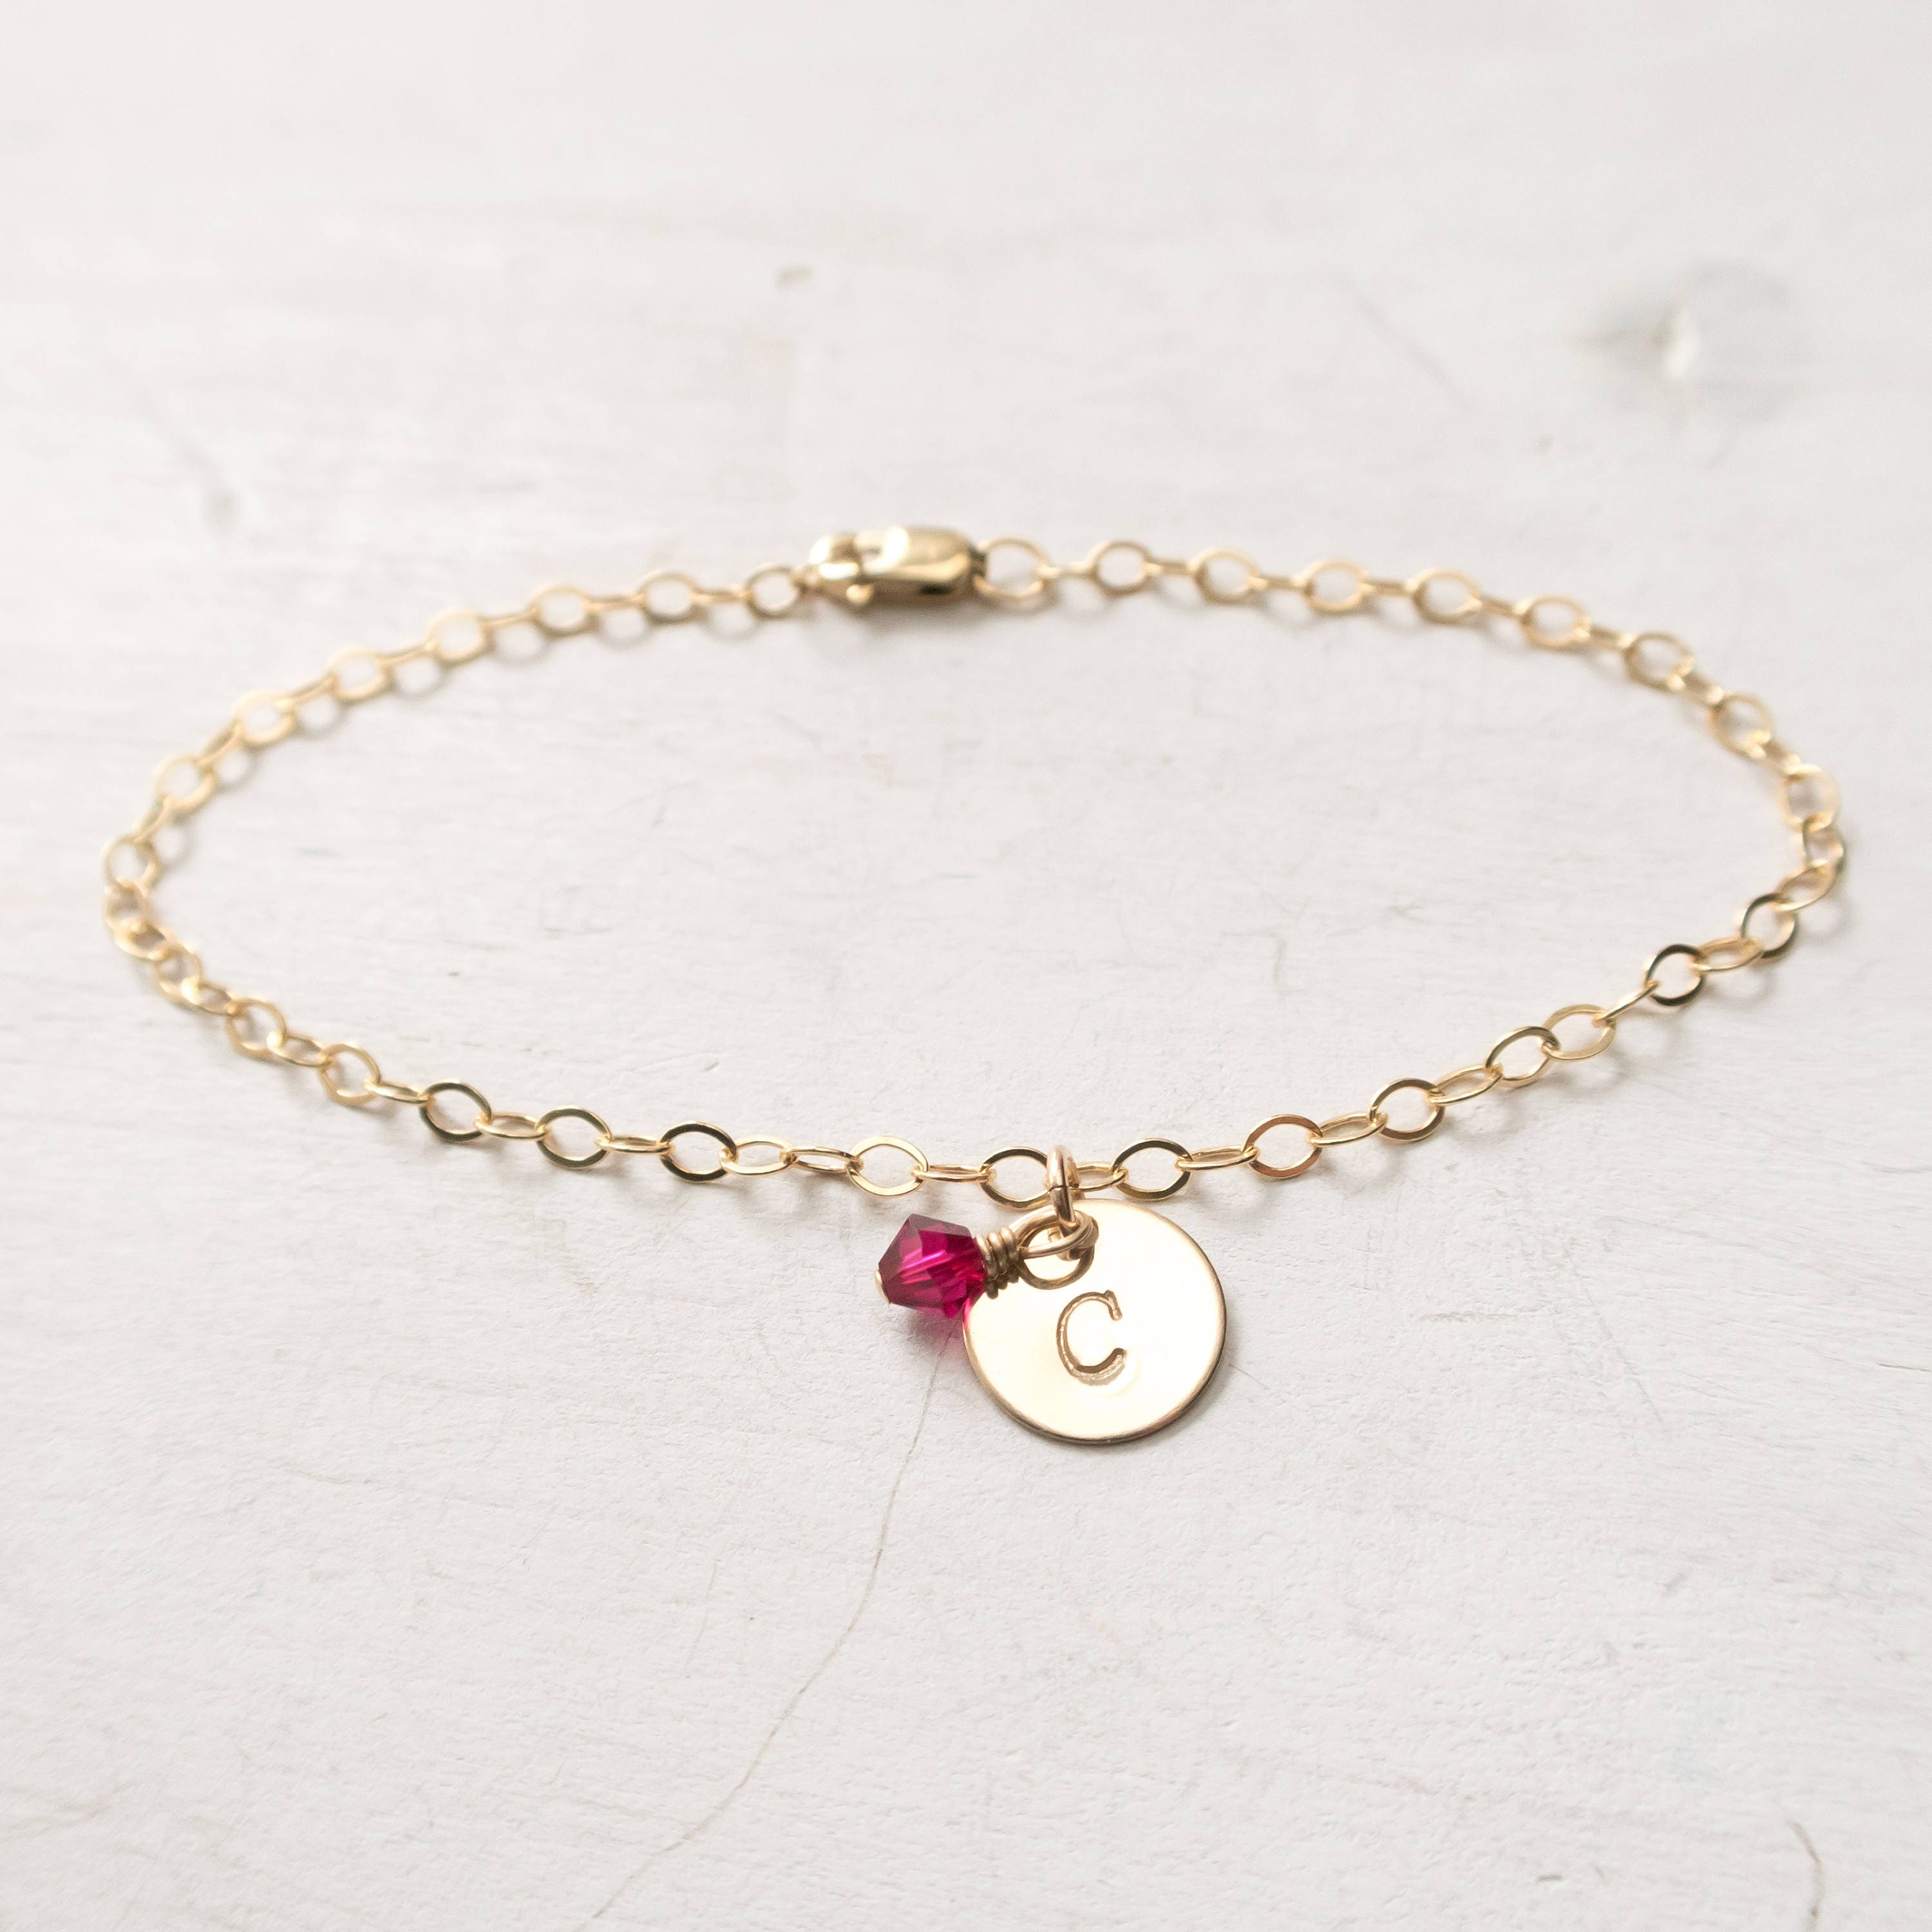 anklet filled channel pin gold birthstone ankle bracelet swarovski